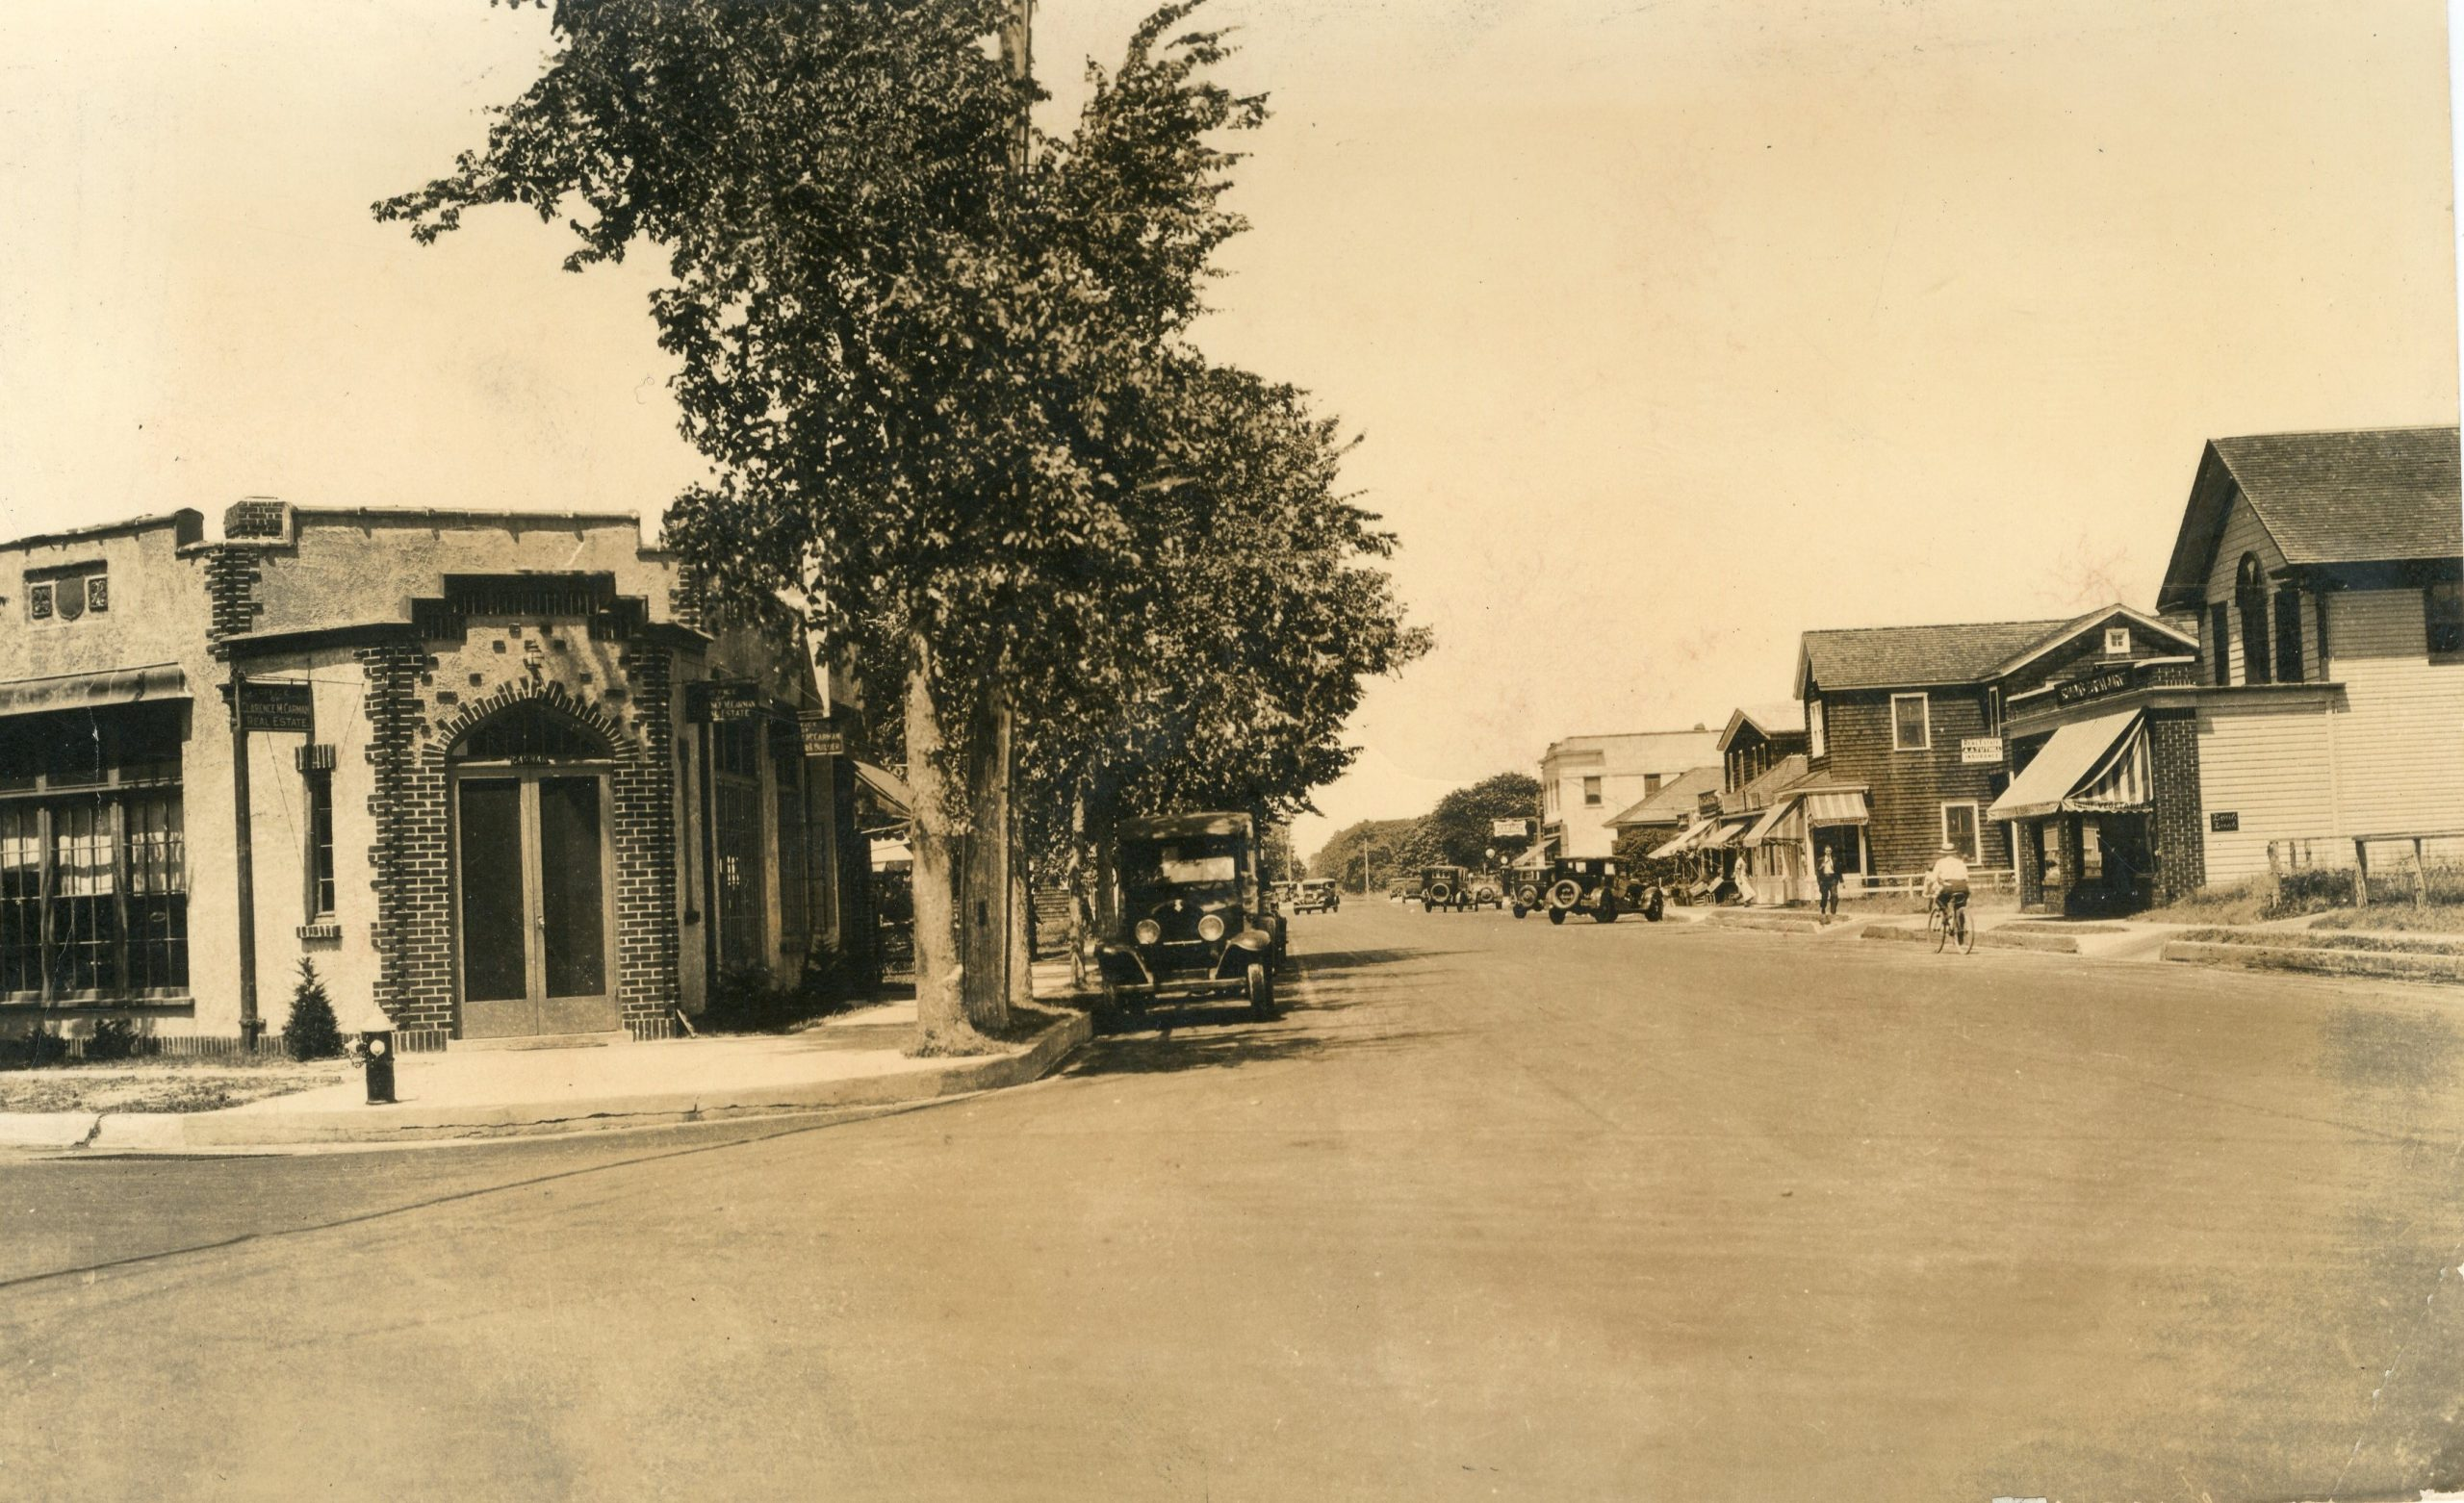 Jessup Avenue, looking north from Quogue Street, c. 1930